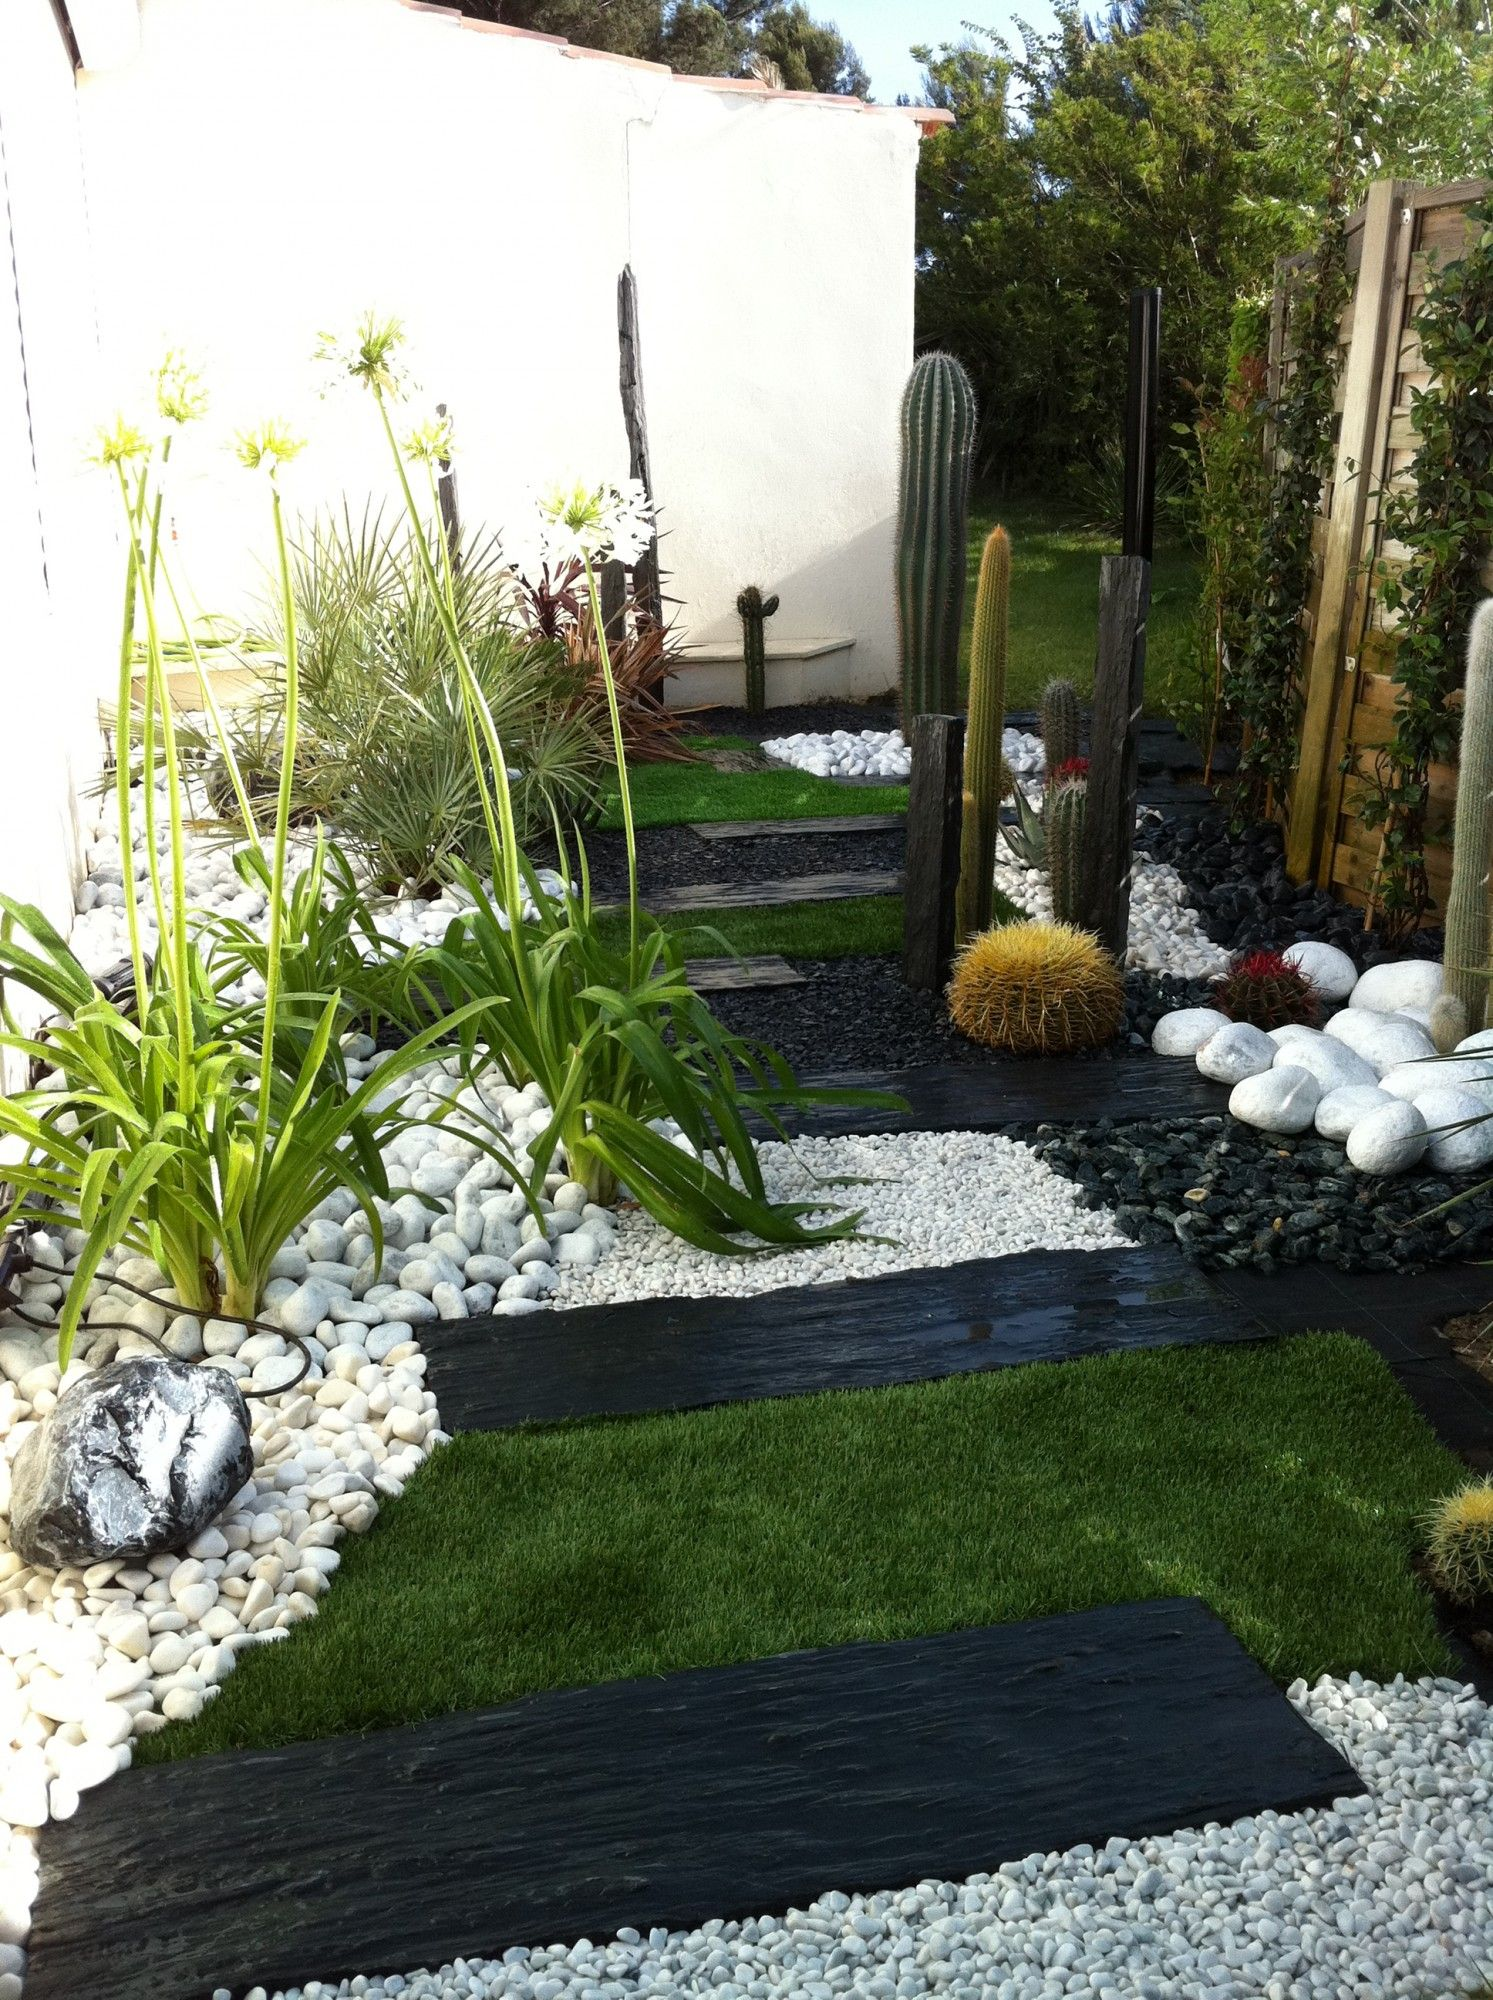 Jardin sec cactus galets polis blancs gazon synth tique for Amenagement jardin cailloux blancs